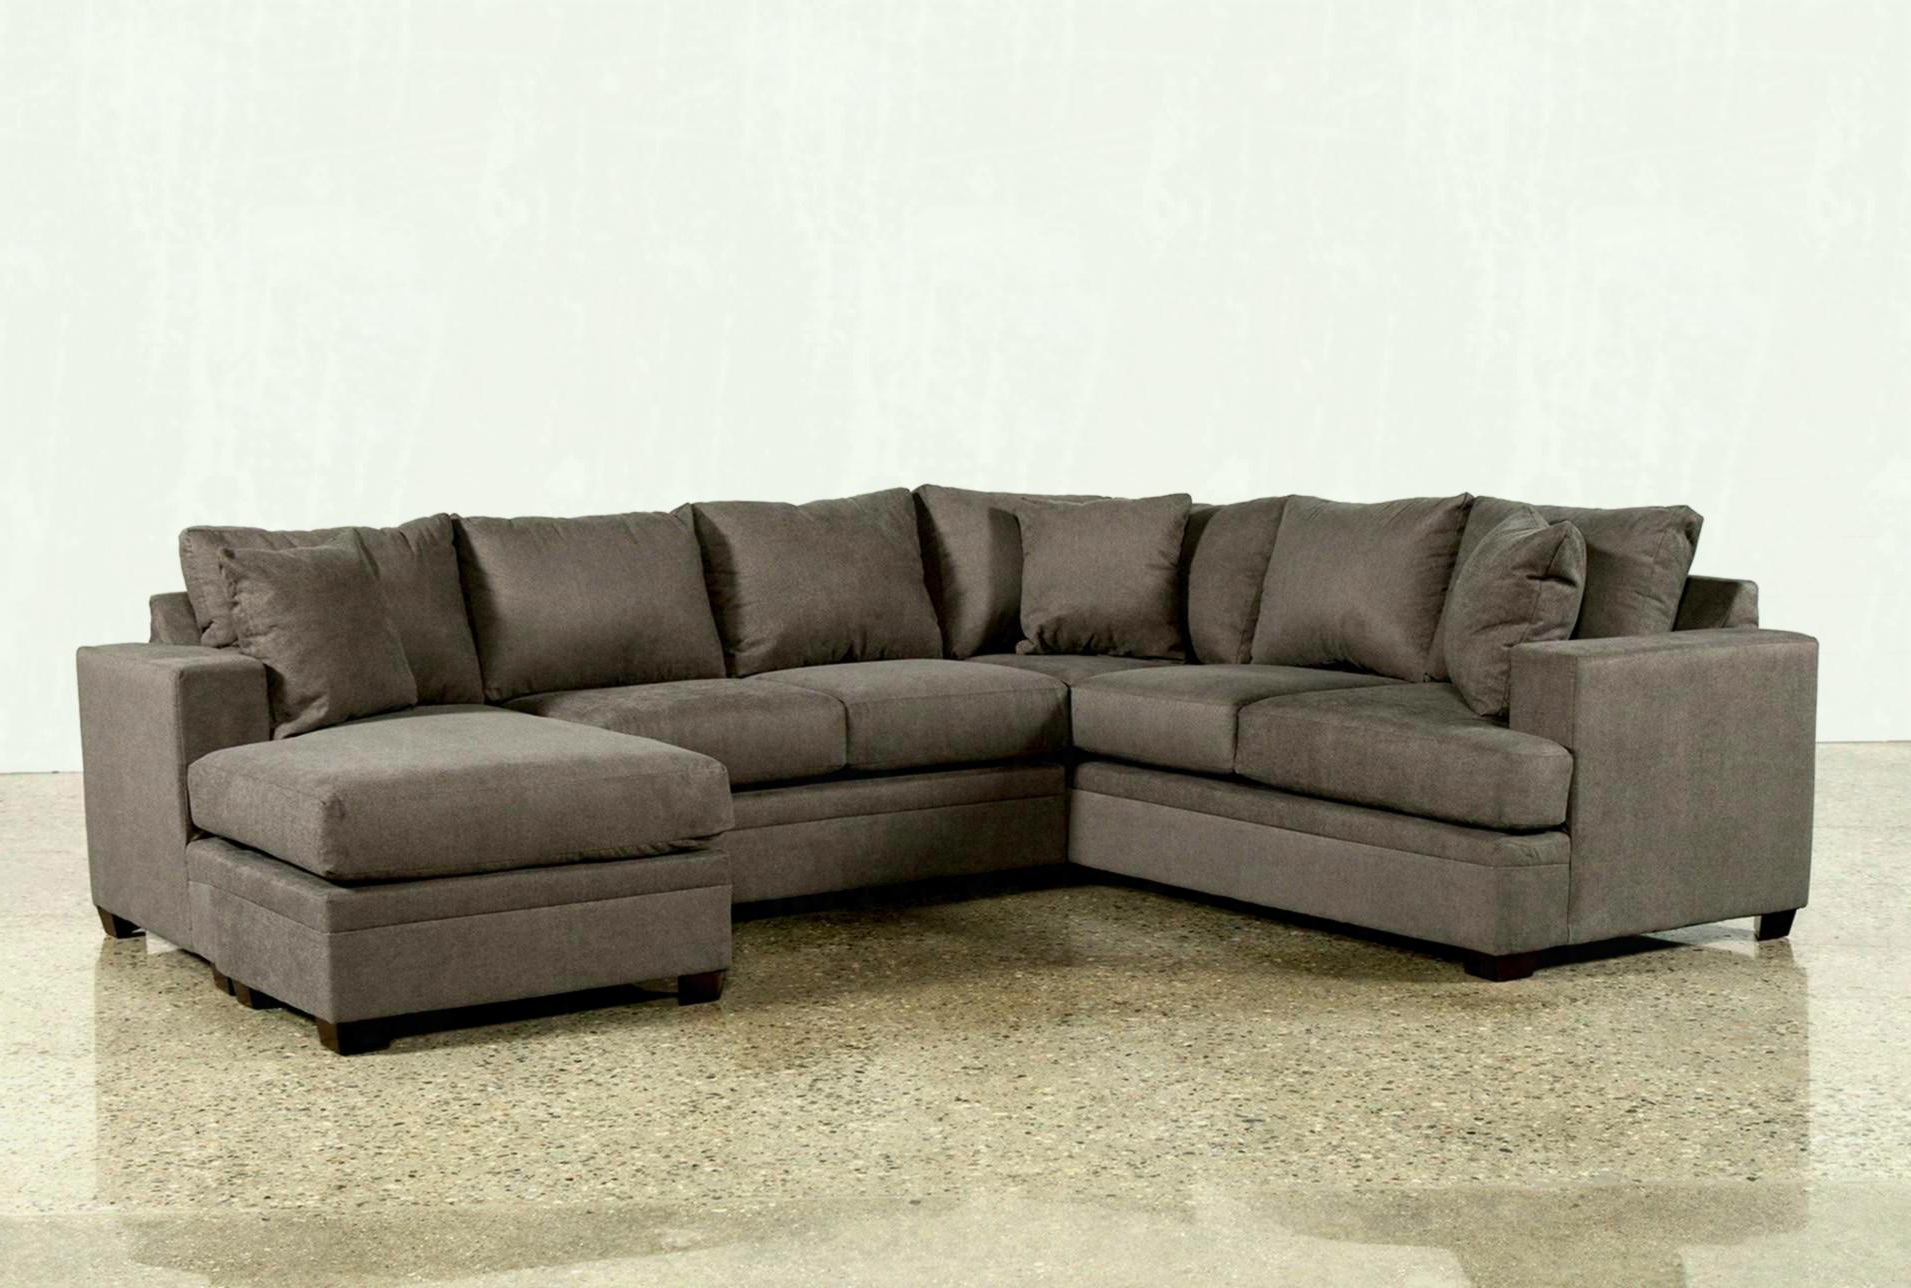 Added To Cart Kerri Piece Sectional W Raf Chaise Living Spaces Throughout Well Liked Lucy Dark Grey 2 Piece Sectionals With Laf Chaise (View 7 of 20)